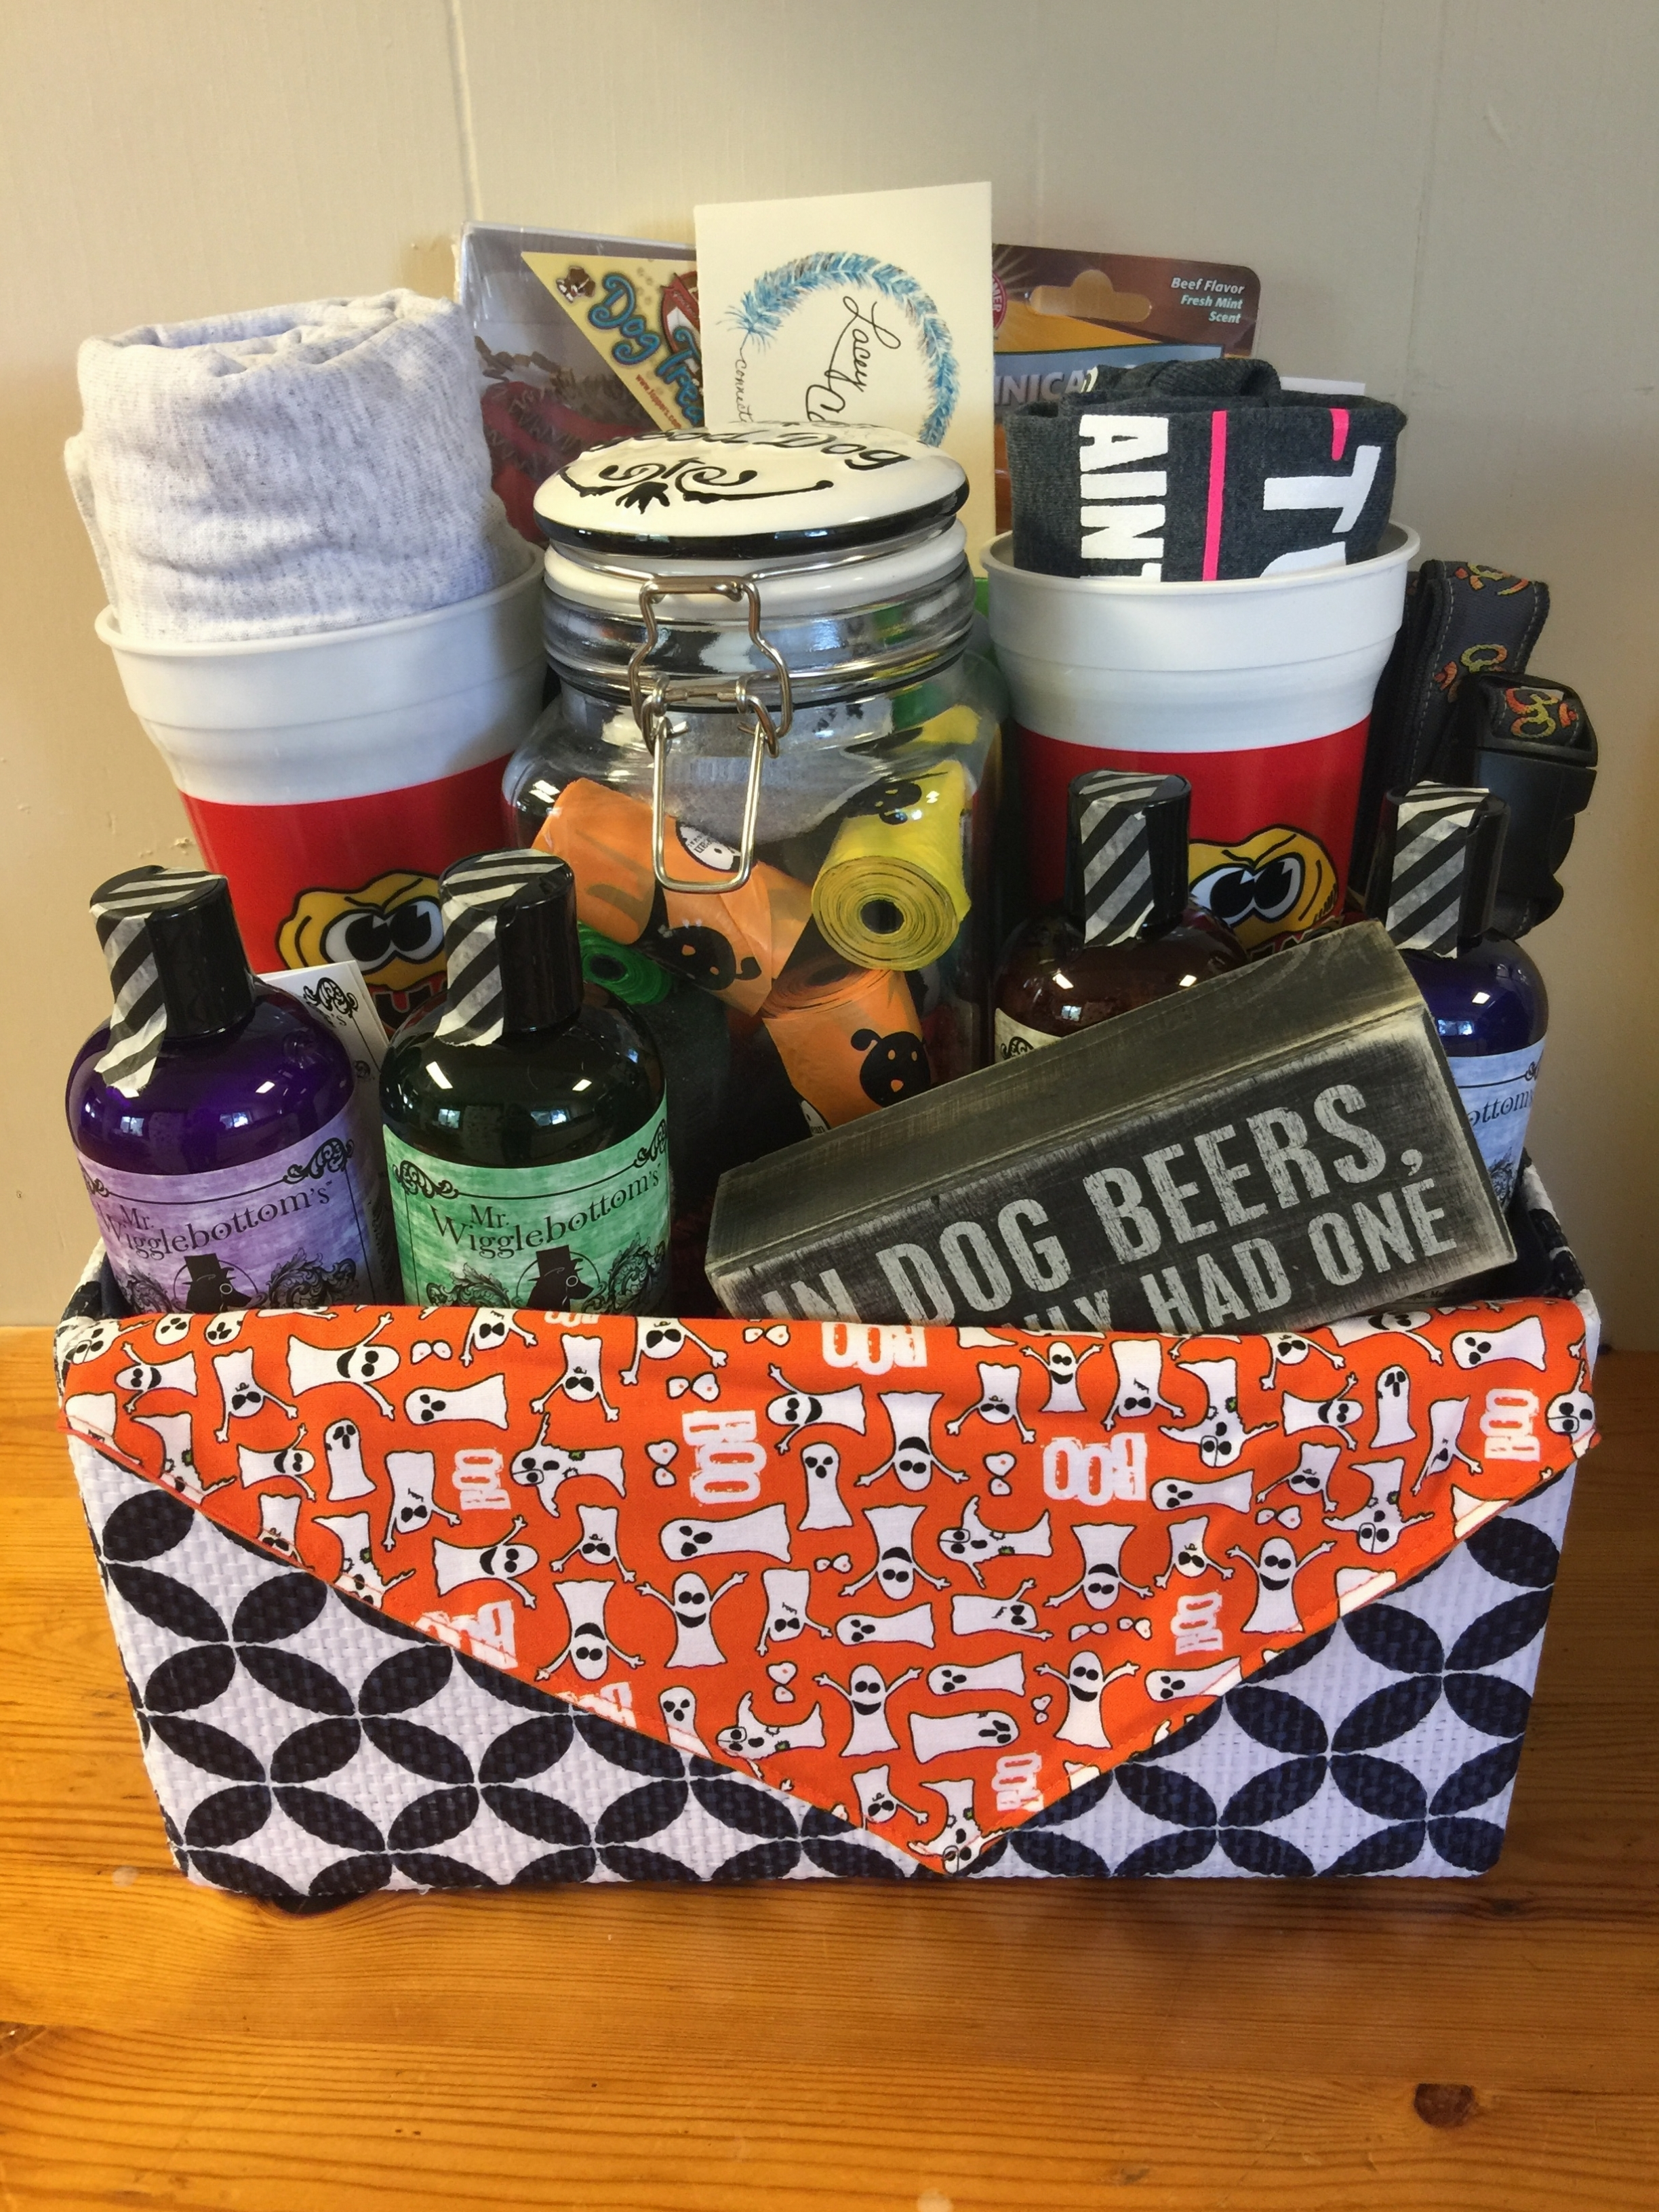 Win this at the Adopt-a-thon!